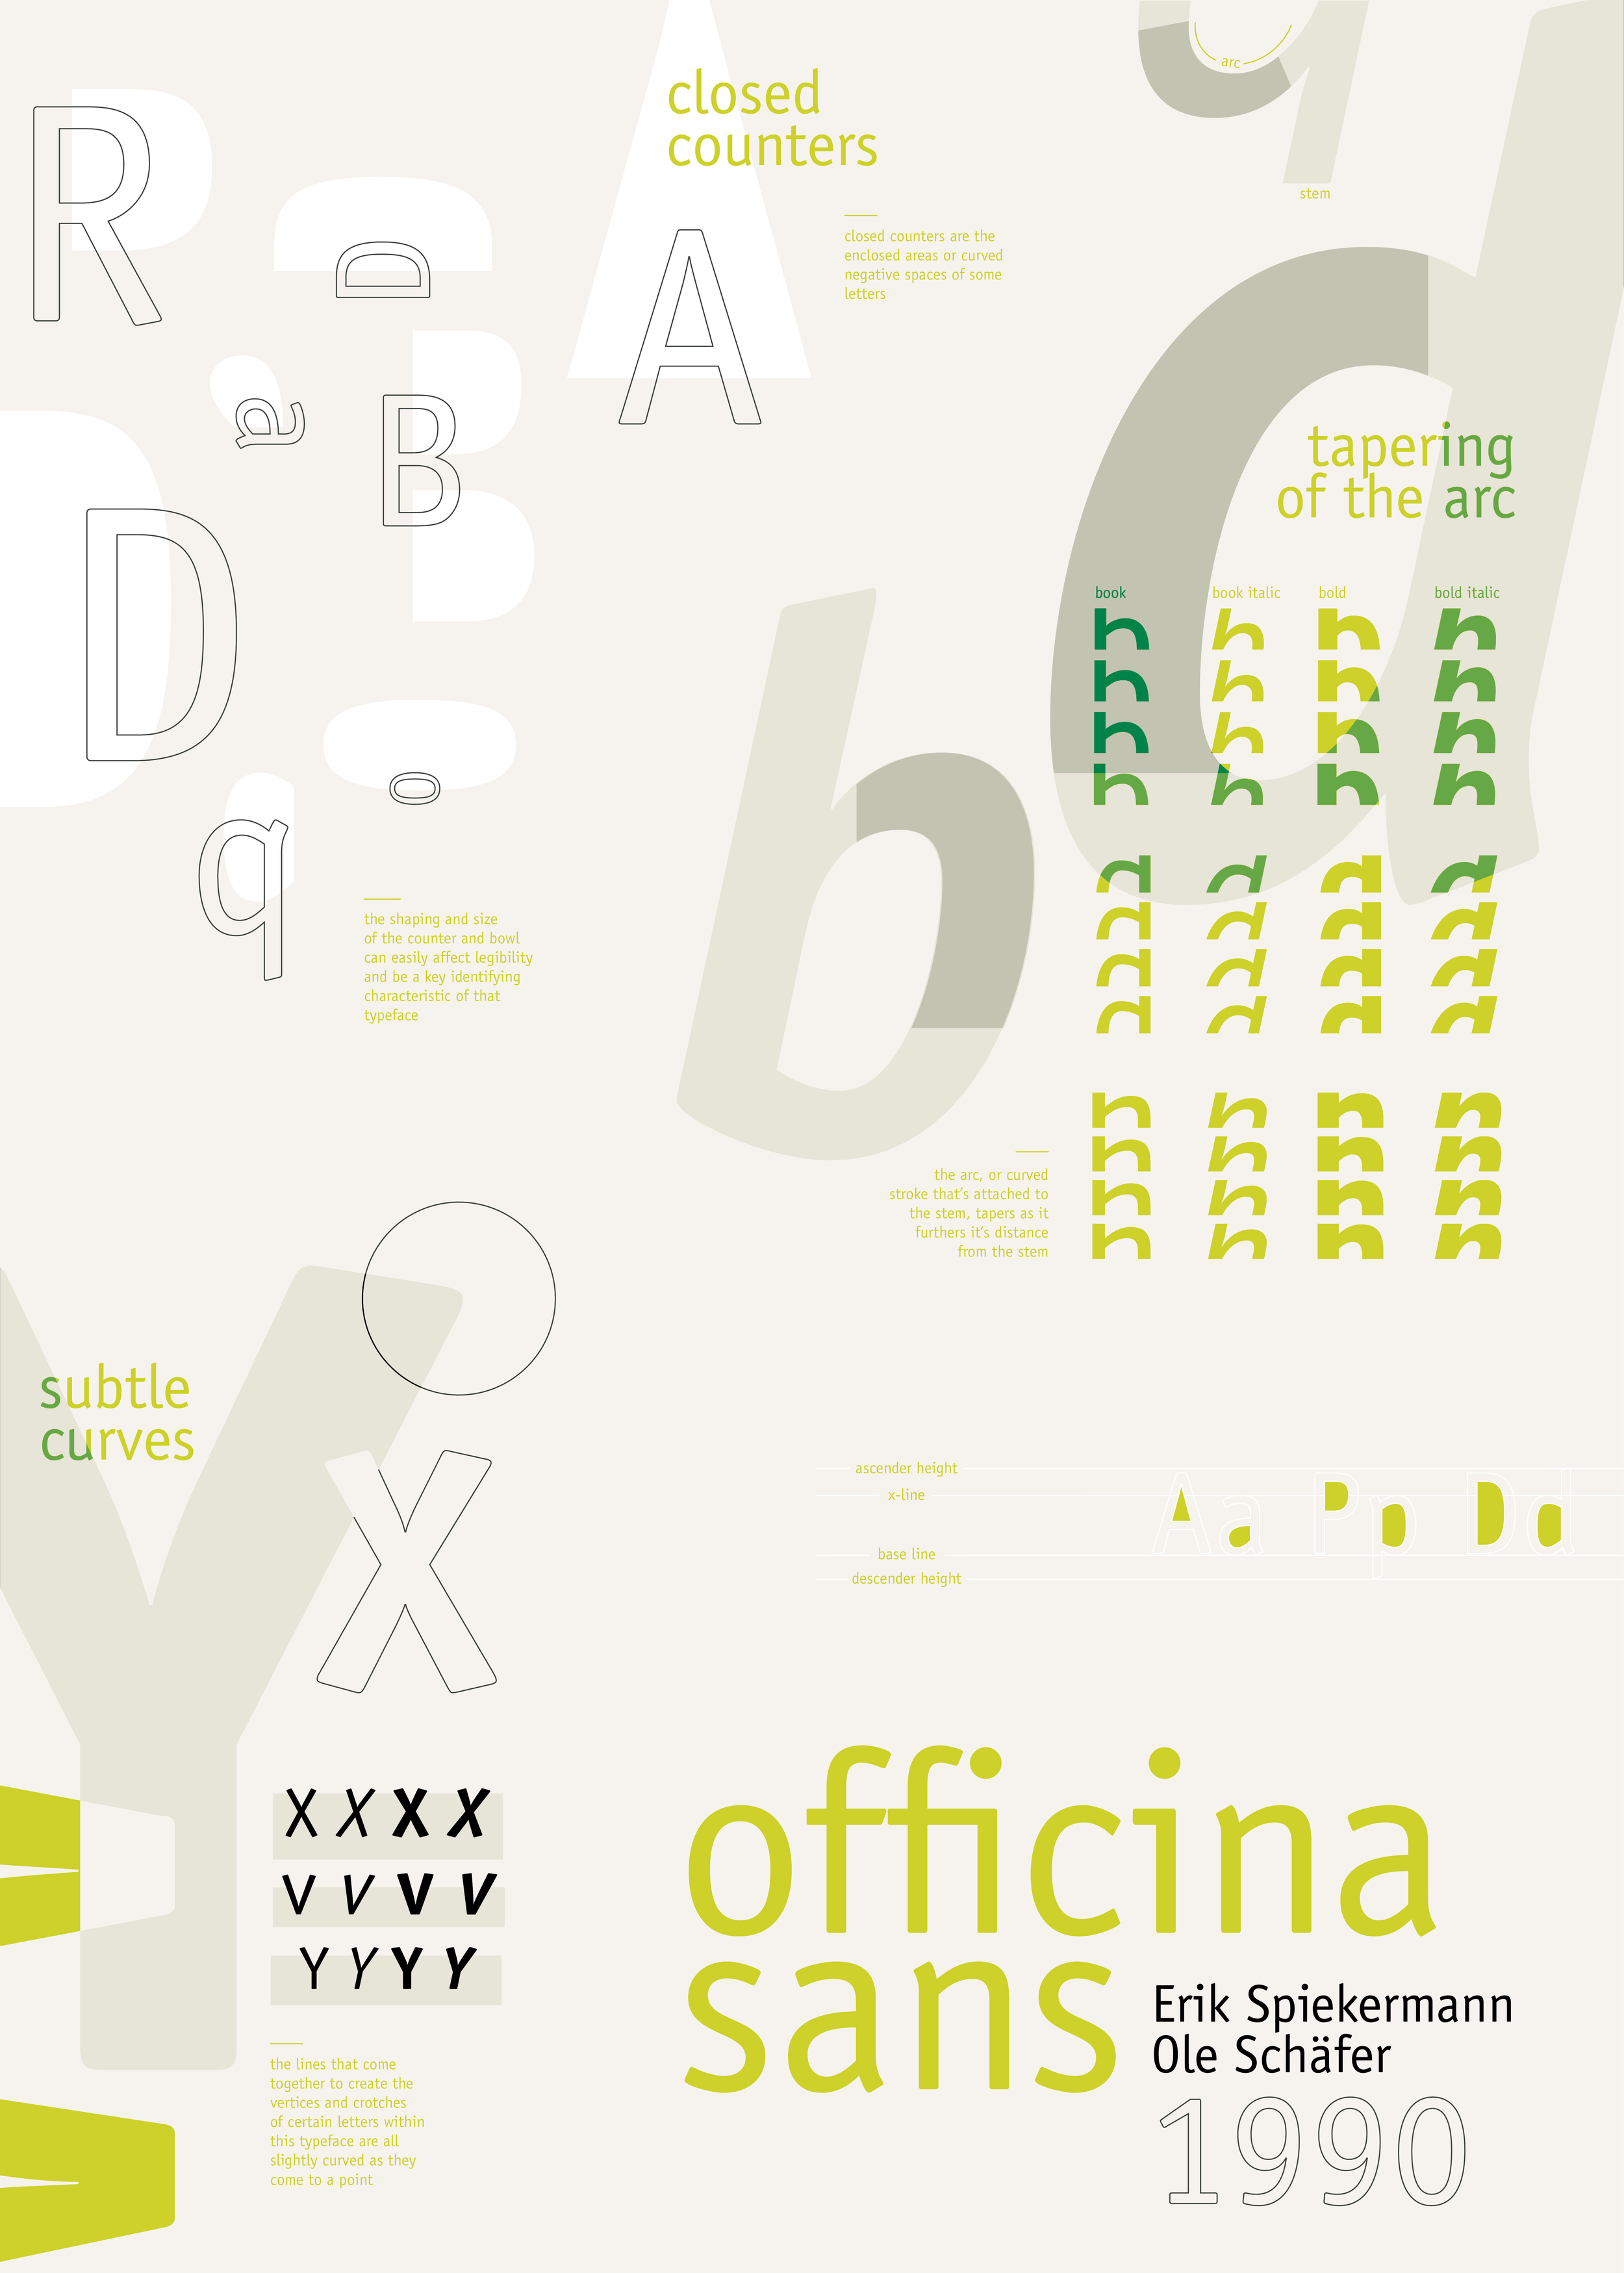 FinalPoster_Iterations-02.png